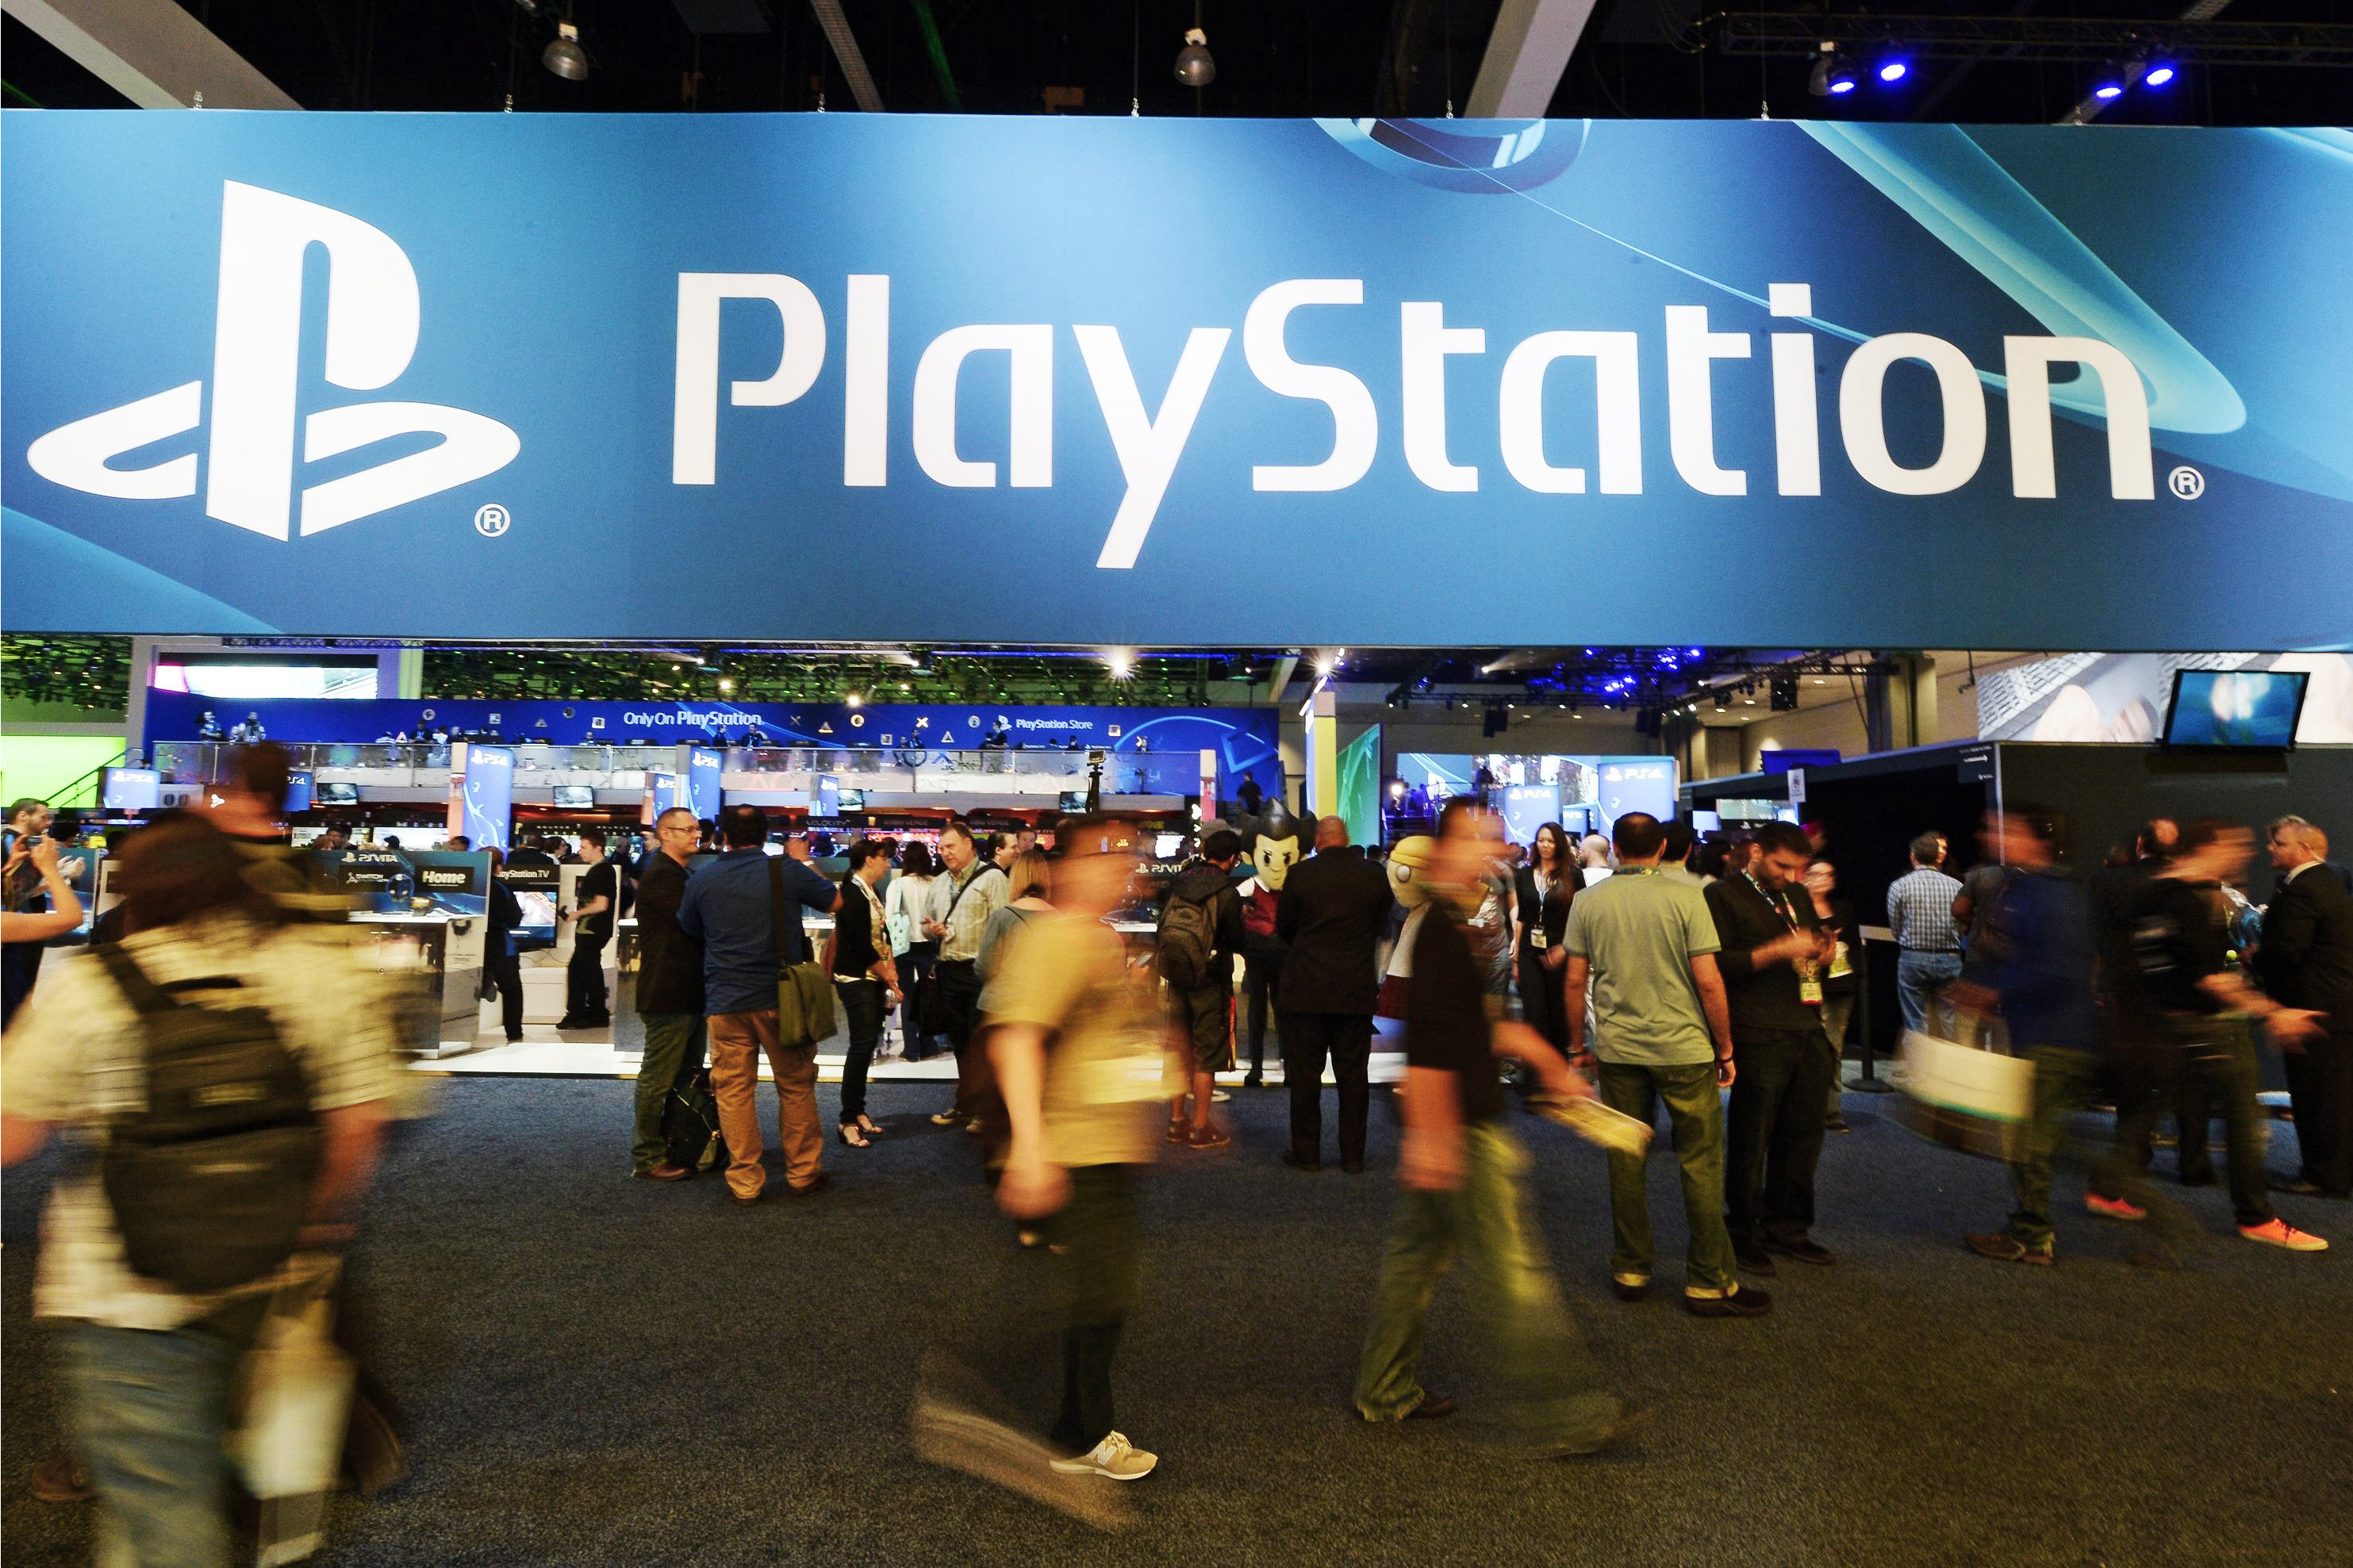 Attendees walk past the Sony Playstation booth at the 2014 Electronic Entertainment Expo, known as E3, in Los Angeles on June 11, 2014.